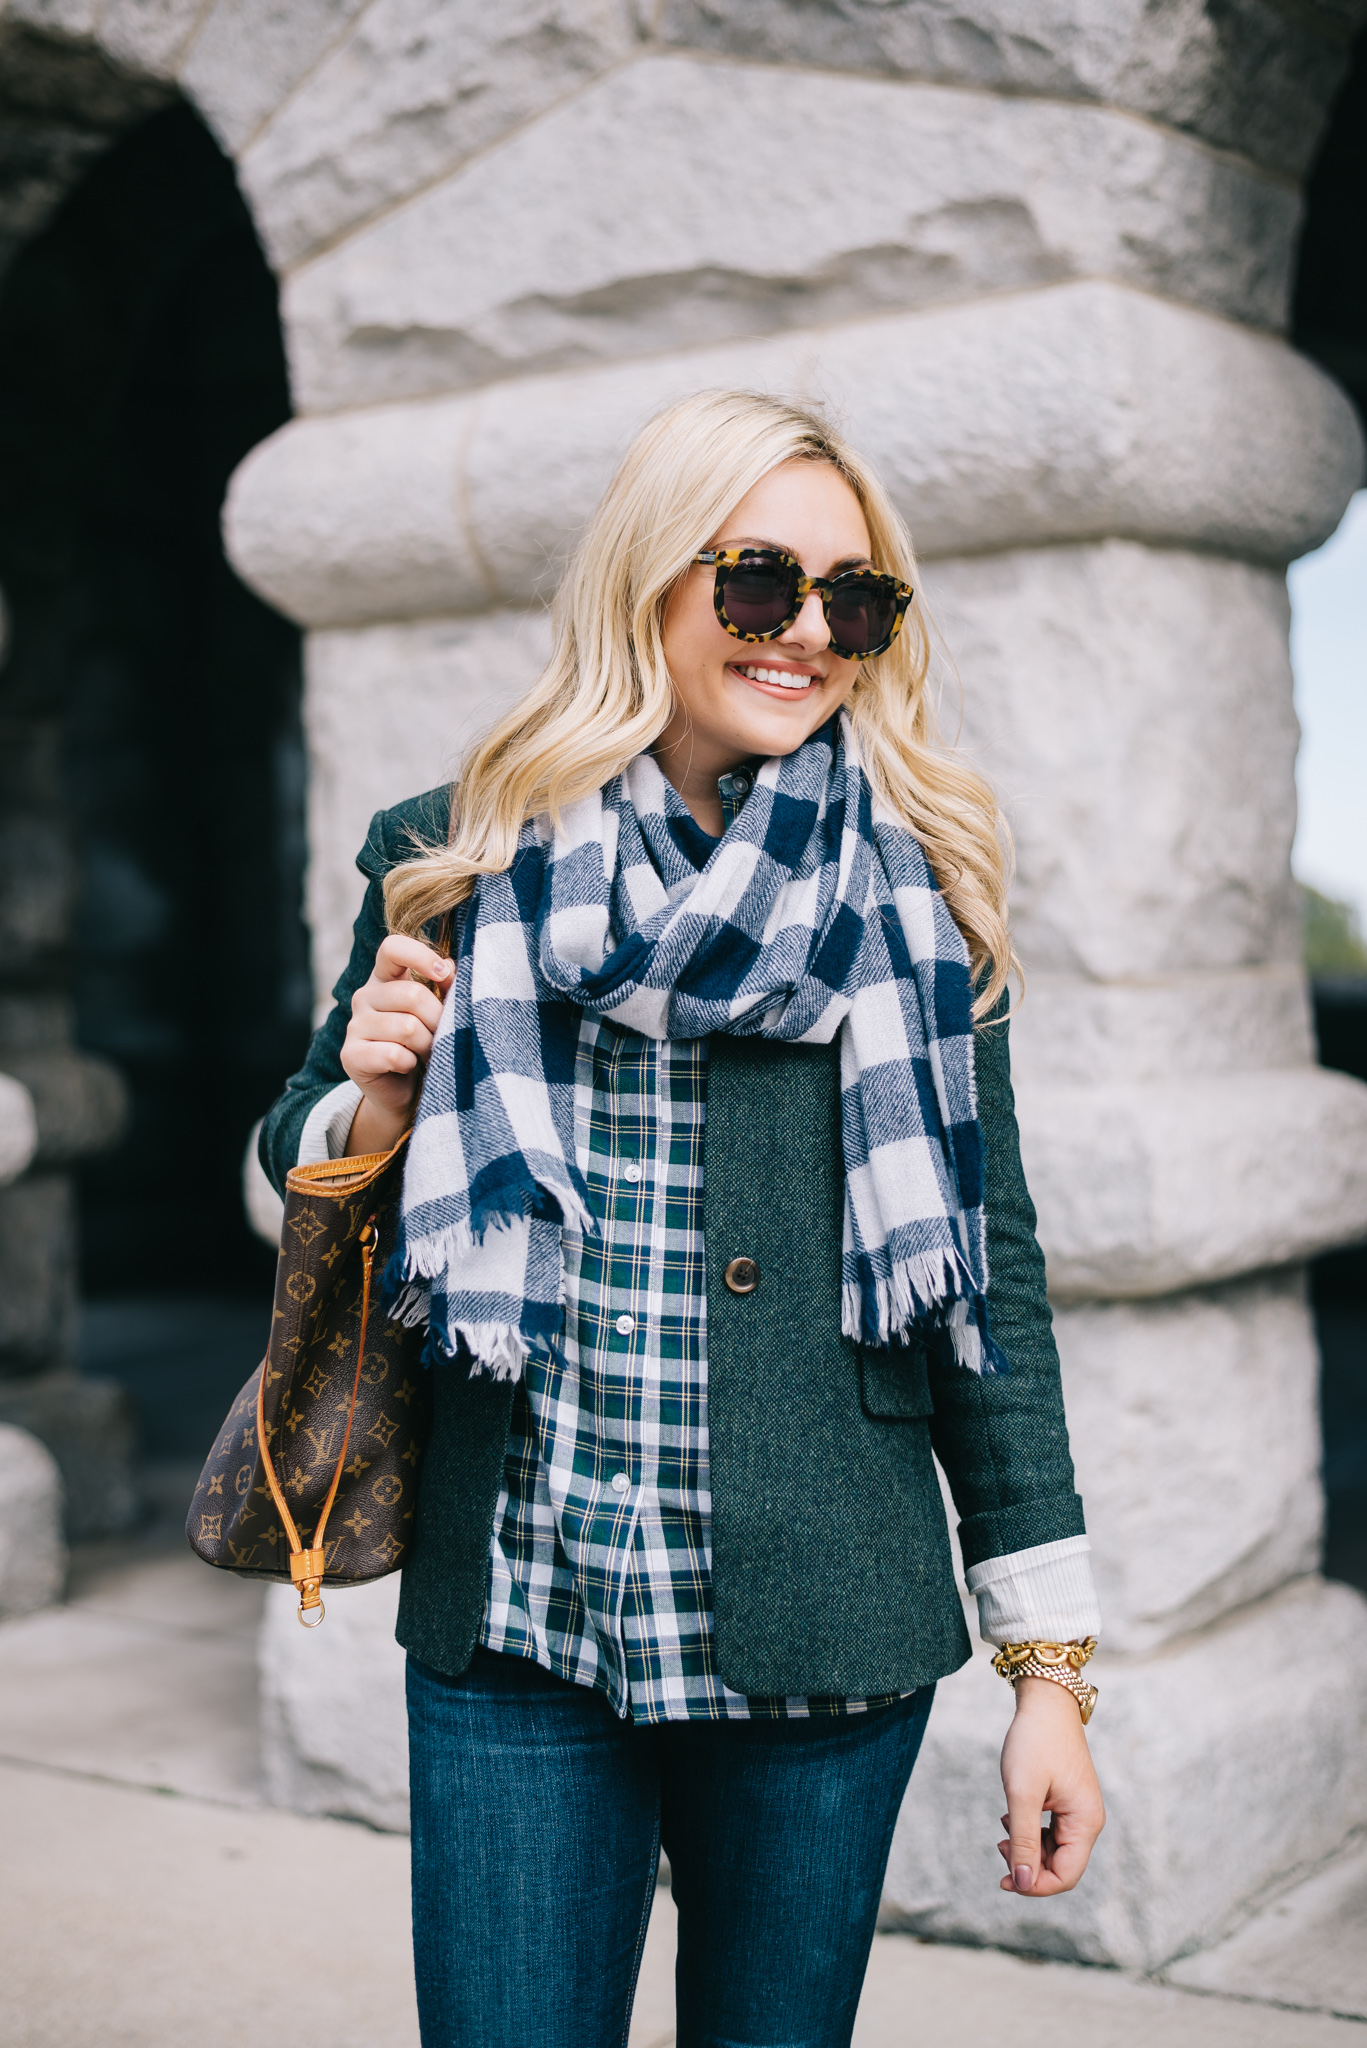 A plaid shirt has a history that goes back to the Scottish Highlands, but it became an important classic in nearly every age. Despite its intricate pattern, there are ways that you can dress up and down the plaid shirt to create a range of versatile looks.